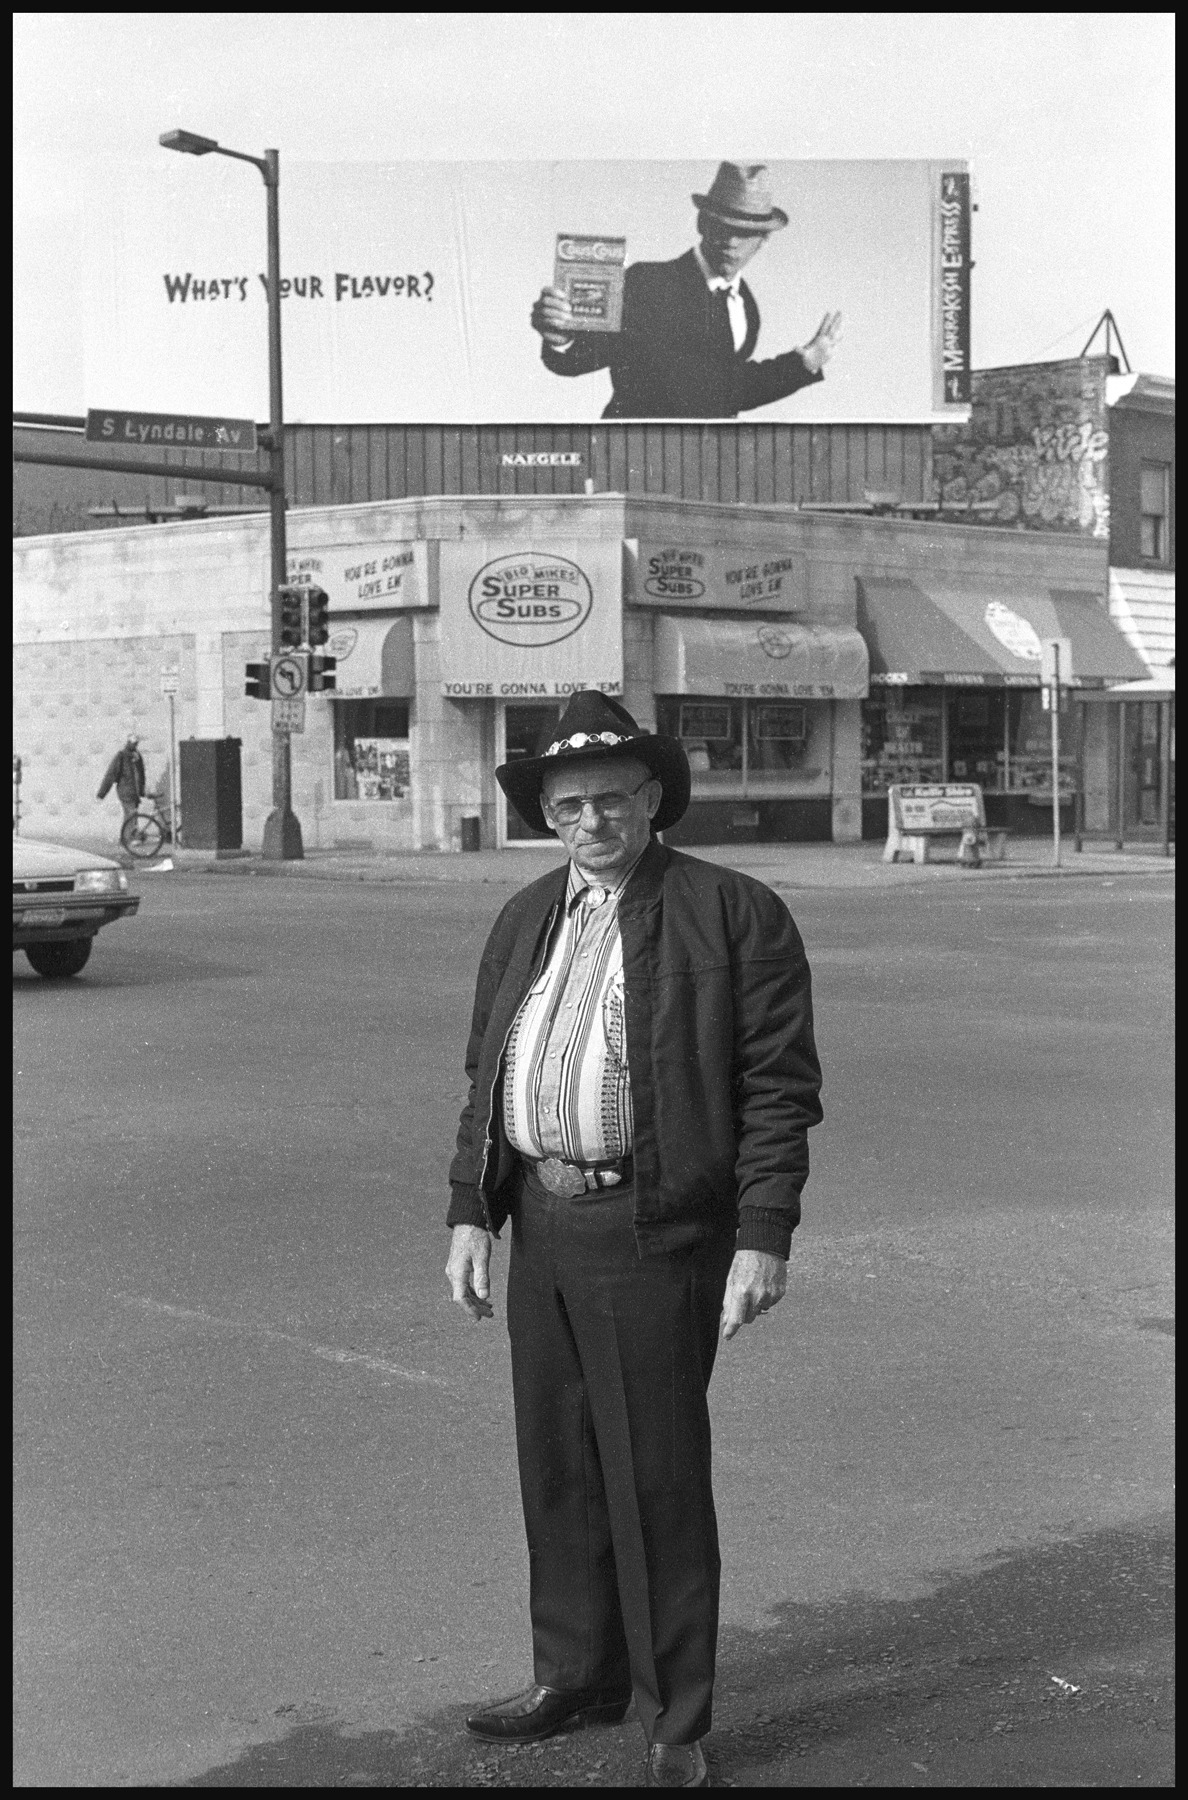 From the Archive - Real Cowboys, Minneapolis, MNLake Street USA (1997 - 2000) [When I met this man he had lost the use of his vocal chords and was using a device that he held to his throat called an electro-larnyx, which amplifies the tissue to create a synthesized, sort of electronic-sounding voice.] Most of 'em here call me cowboy and that's it. There must not be too many around. At least not real ones. I'm from El Paso, but I'm here because I've had two cancer operations at Abbott. When they found the cancer everything happened so fast, I didn't have time to think about it long. By the time I went to the hospital they told me we've got about thirty minutes to cut you open or you're going to be gone. The cancer had wound around my vocal chords. Now I have tubes down there that I breathe through. But I feel lucky. When I get up in the morning and my feet feel the carpet I know I'm still here. I can still communicate. I don't even consider this much of a handicap.  I made most of my living as a heavy equipment operator. But music was my passion, still is, but I can't find one of these things that sings [points to the electro-larnyx]. I sang with Bill Monroe and his Blue Grass Boys out of Nashville, Tennessee. Sang for 35 years. In a month I'm going to Chattanooga. I'm just going back to see if some of those people are still around. I miss singing. It was a big part of my life. I also trained horses when I was young. I still do, even though I'm not supposed to be doing it. I don't know if I would want to live if I couldn't have something to do with horses. Most of my family, my dad and my brother–well they're all dead now–we were all horse people.